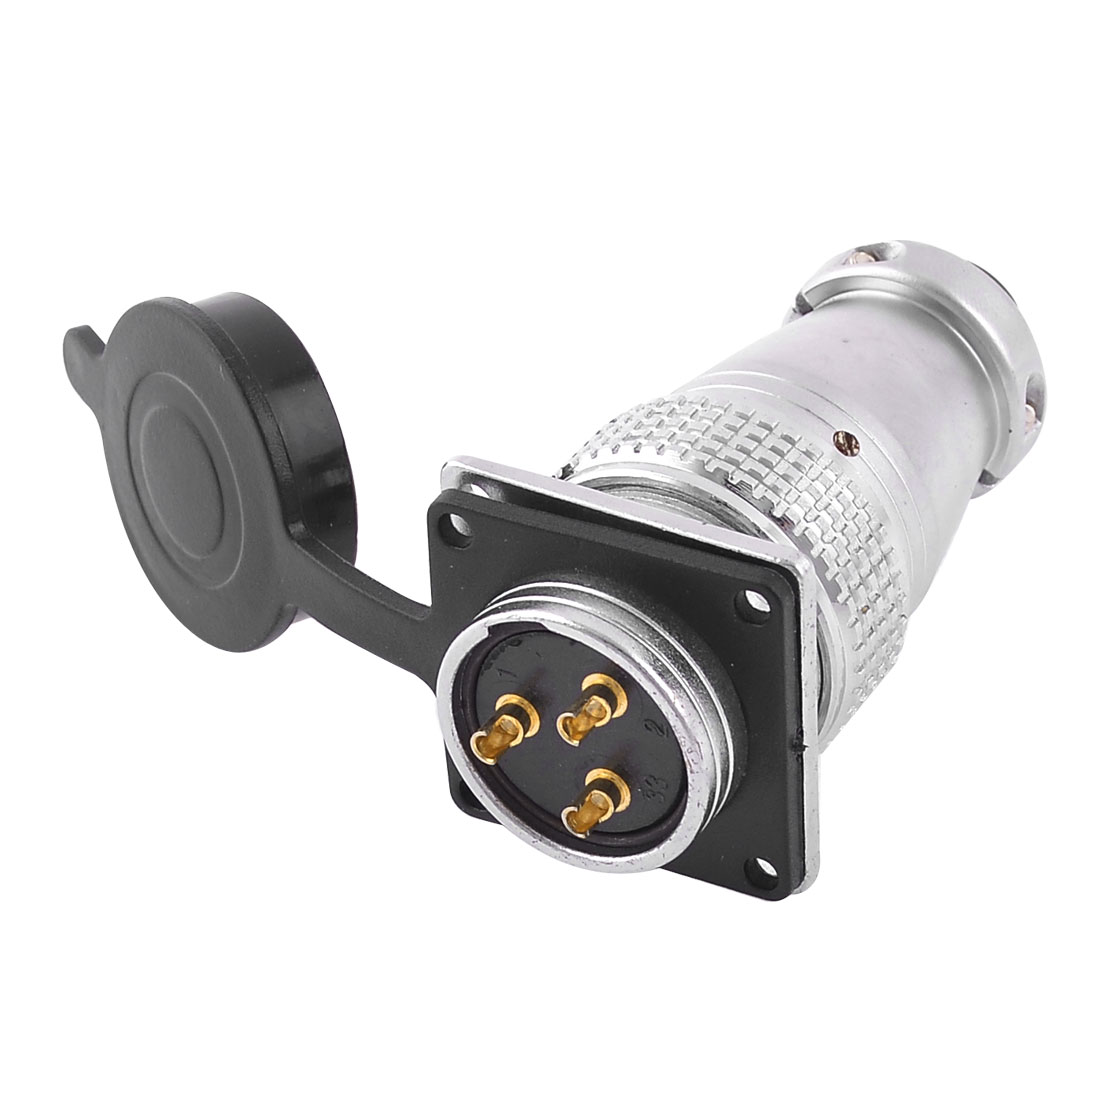 Y28-3 Waterproof 3P Aviation Connector Adapter AC 400V 25A